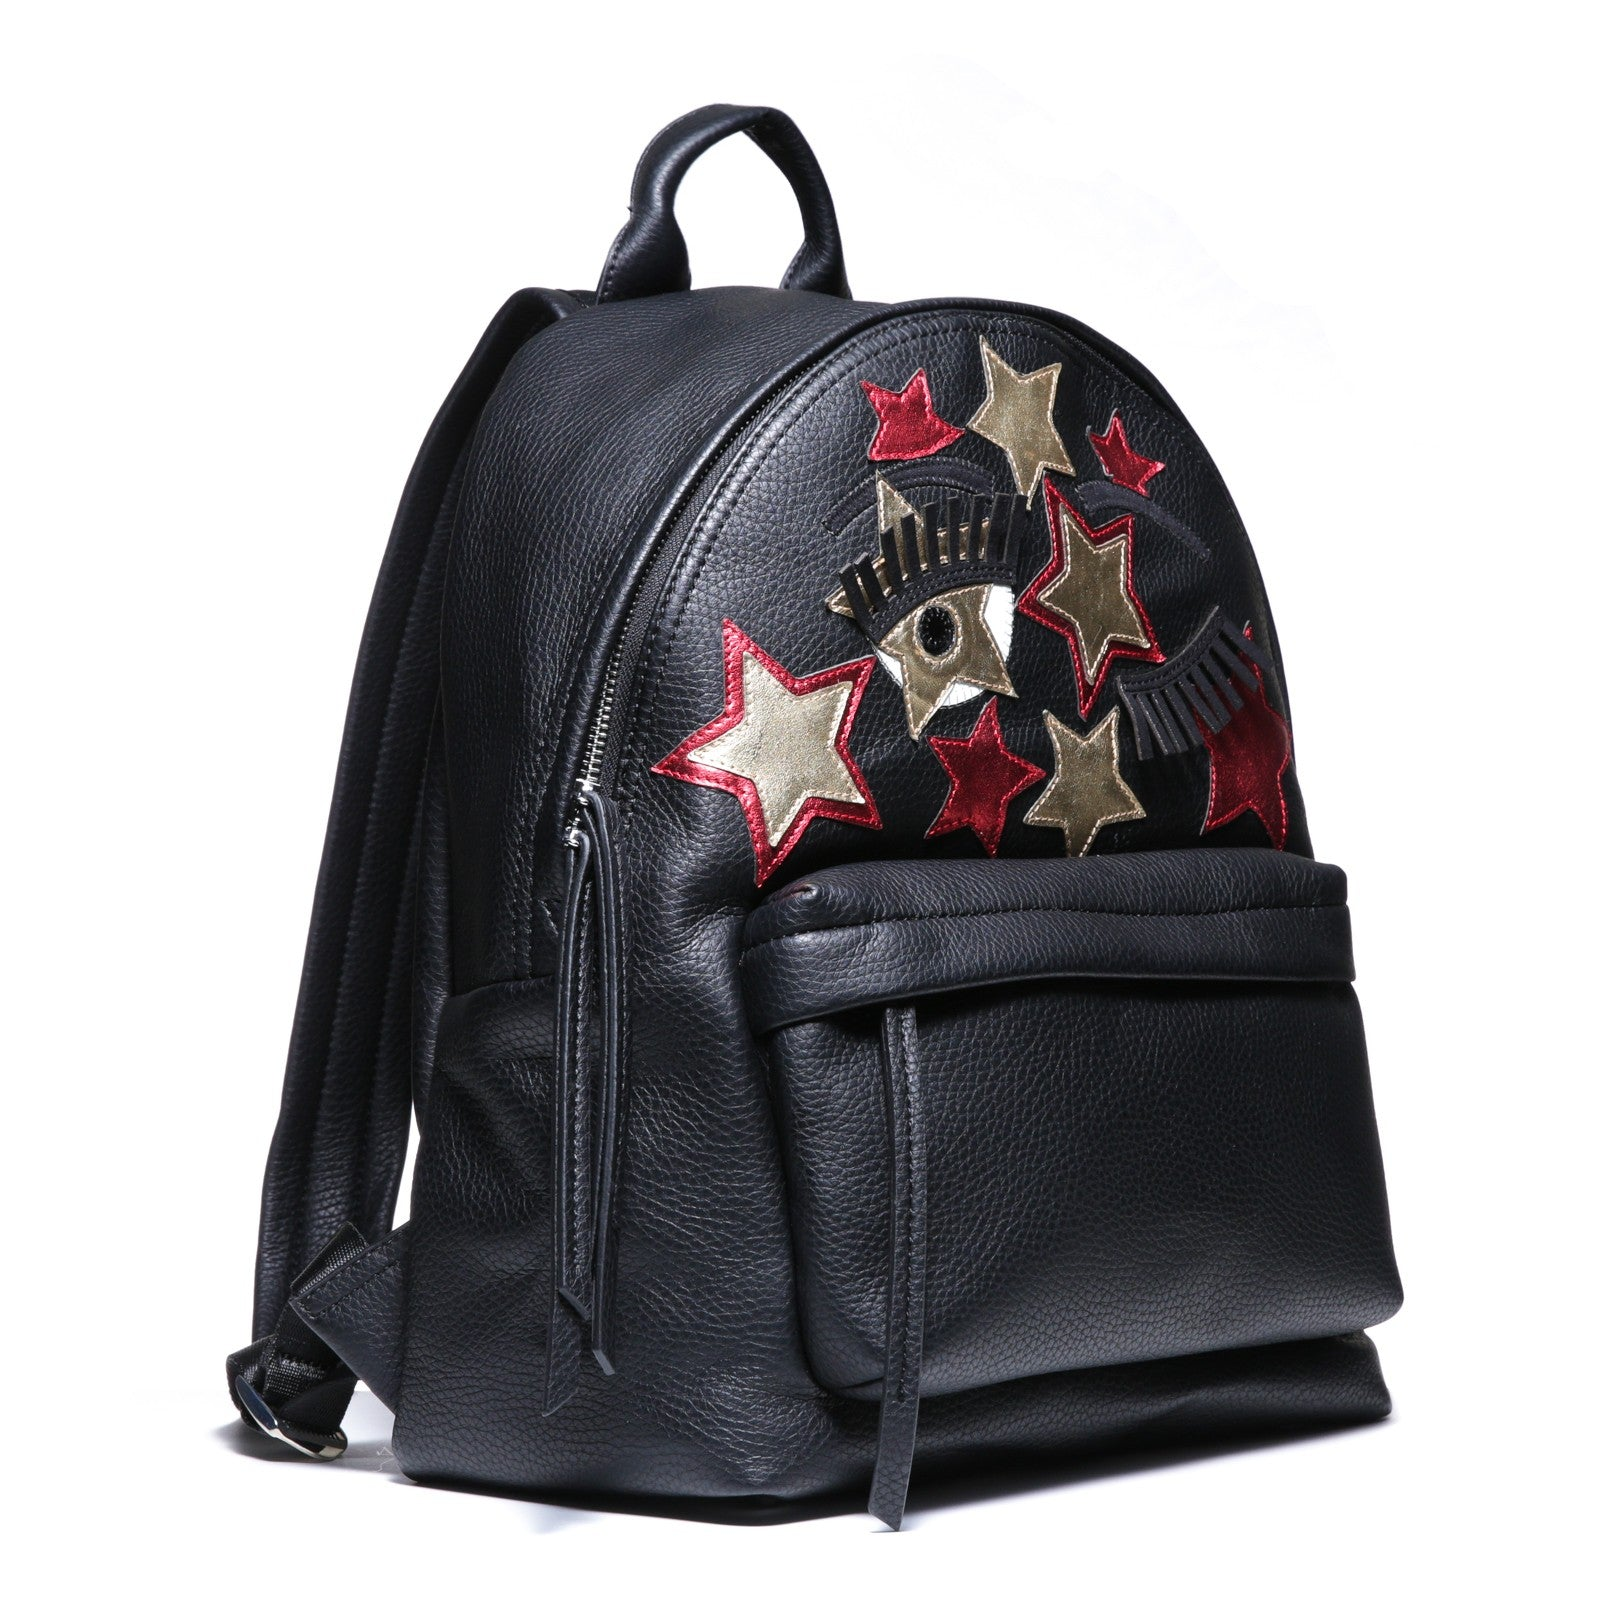 Chiara Ferragni - Flirting Backpack Black with Red/Gold Star